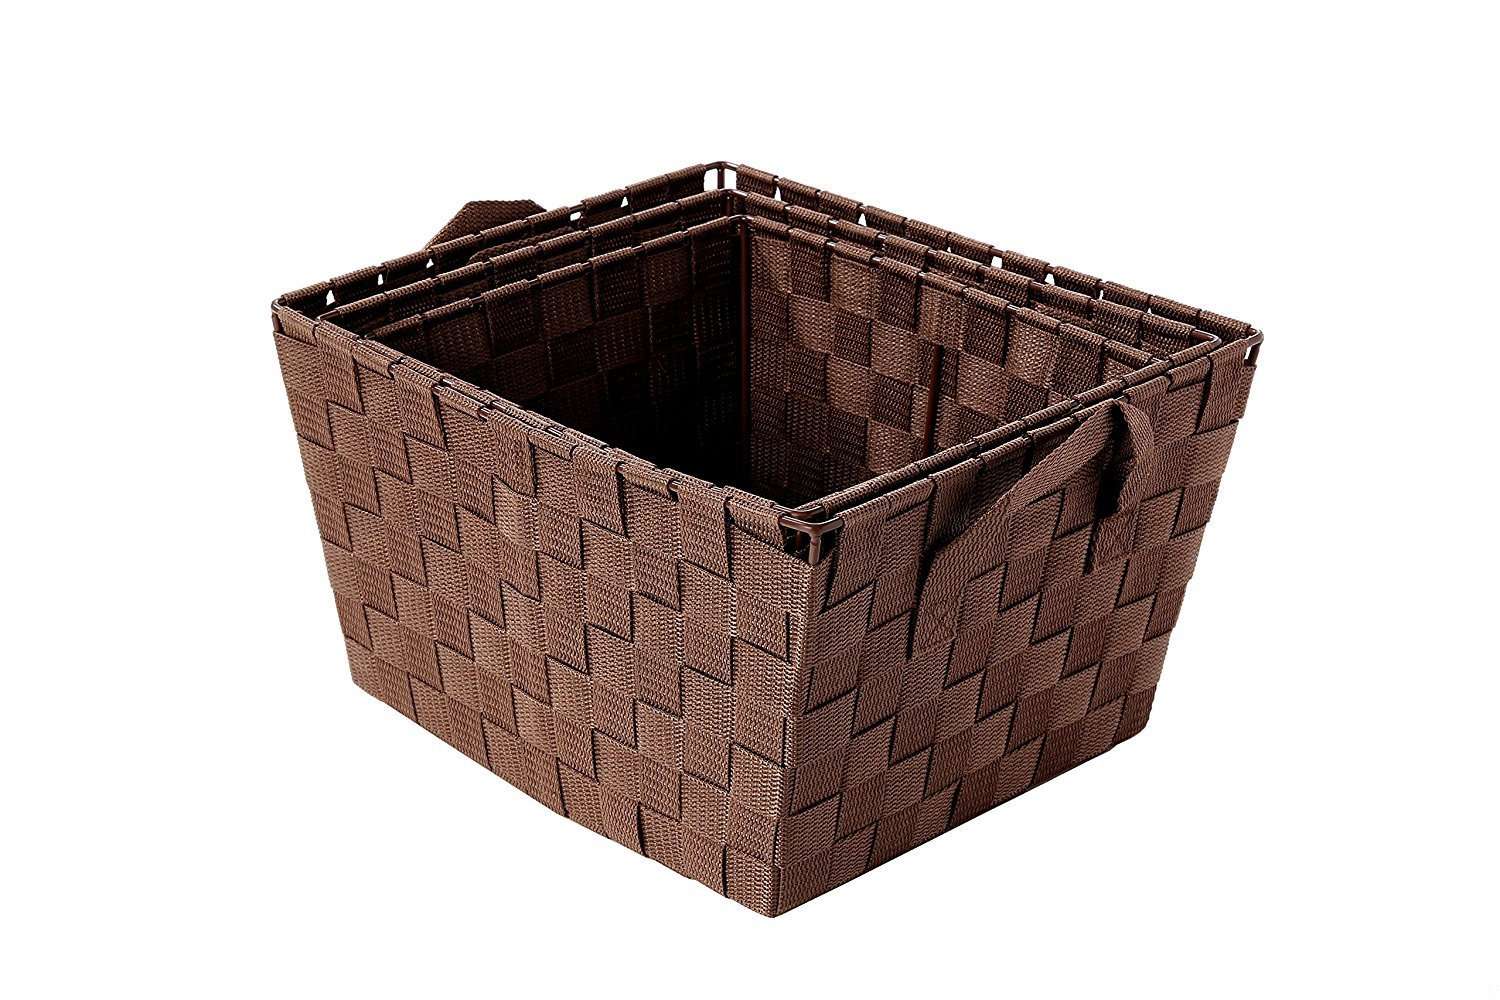 Juvale Woven Storage Baskets - 3-Piece Storage Tote Baskets, Woven Strap Organization Containers, Decorative Shelf Baskets for Home Closet, Bedroom Drawers - Small, Medium, Large - Brown - VERSATILE SET: This set of 3 baskets are the ideal utility/storage basket, they look great in any room and the varying sizes make this set versatile. STACKABLE WHEN NOT IN USE: The baskets stack inside of each other allowing for convenient and easy storage when not in use. CONVENIENT SIDE HANDLES: Integrated handles easily help you transport basket from one place to another. - living-room-decor, living-room, baskets-storage - 81z3XVw9gKL -